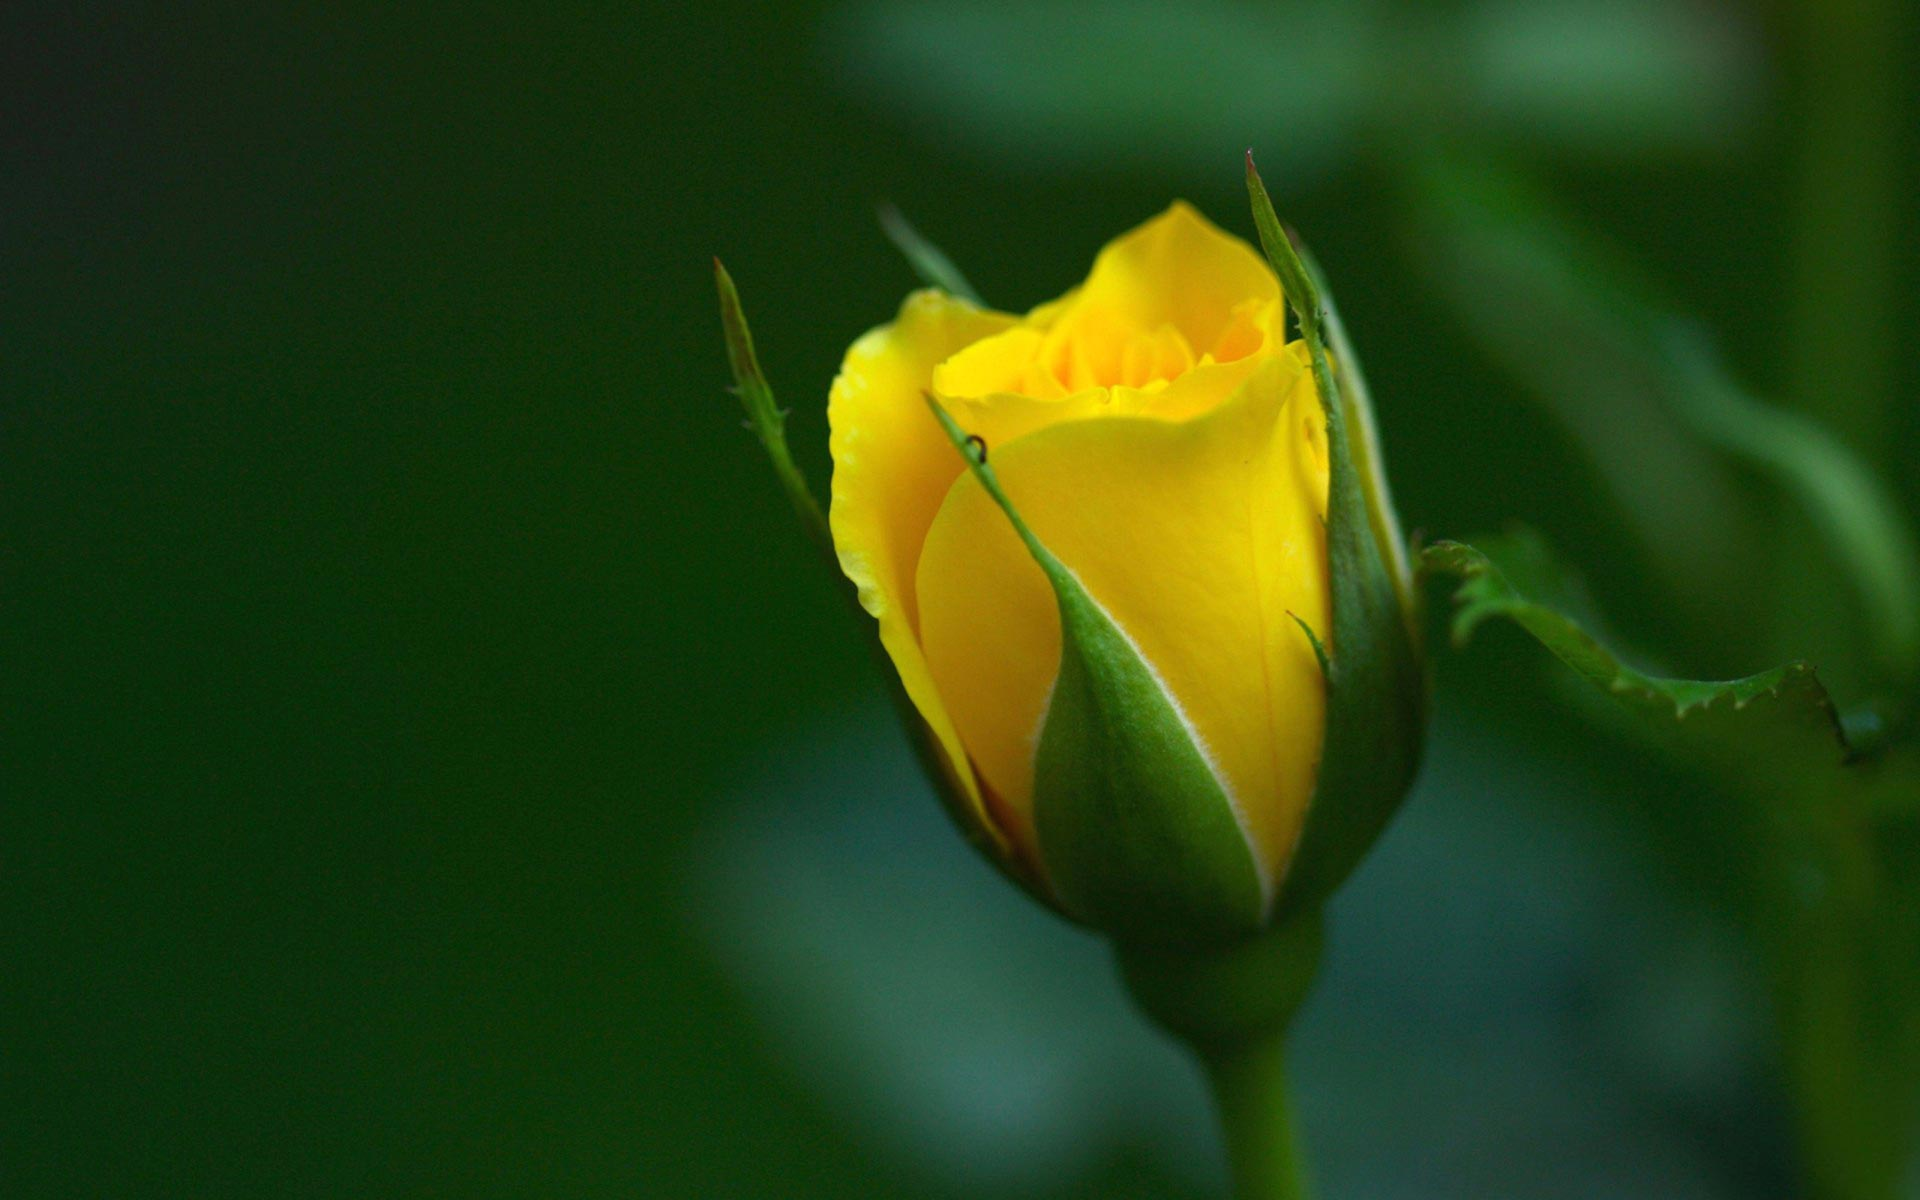 Yellow Rose Flowers Wallpapers The Best Flowers Ideas 1920x1200